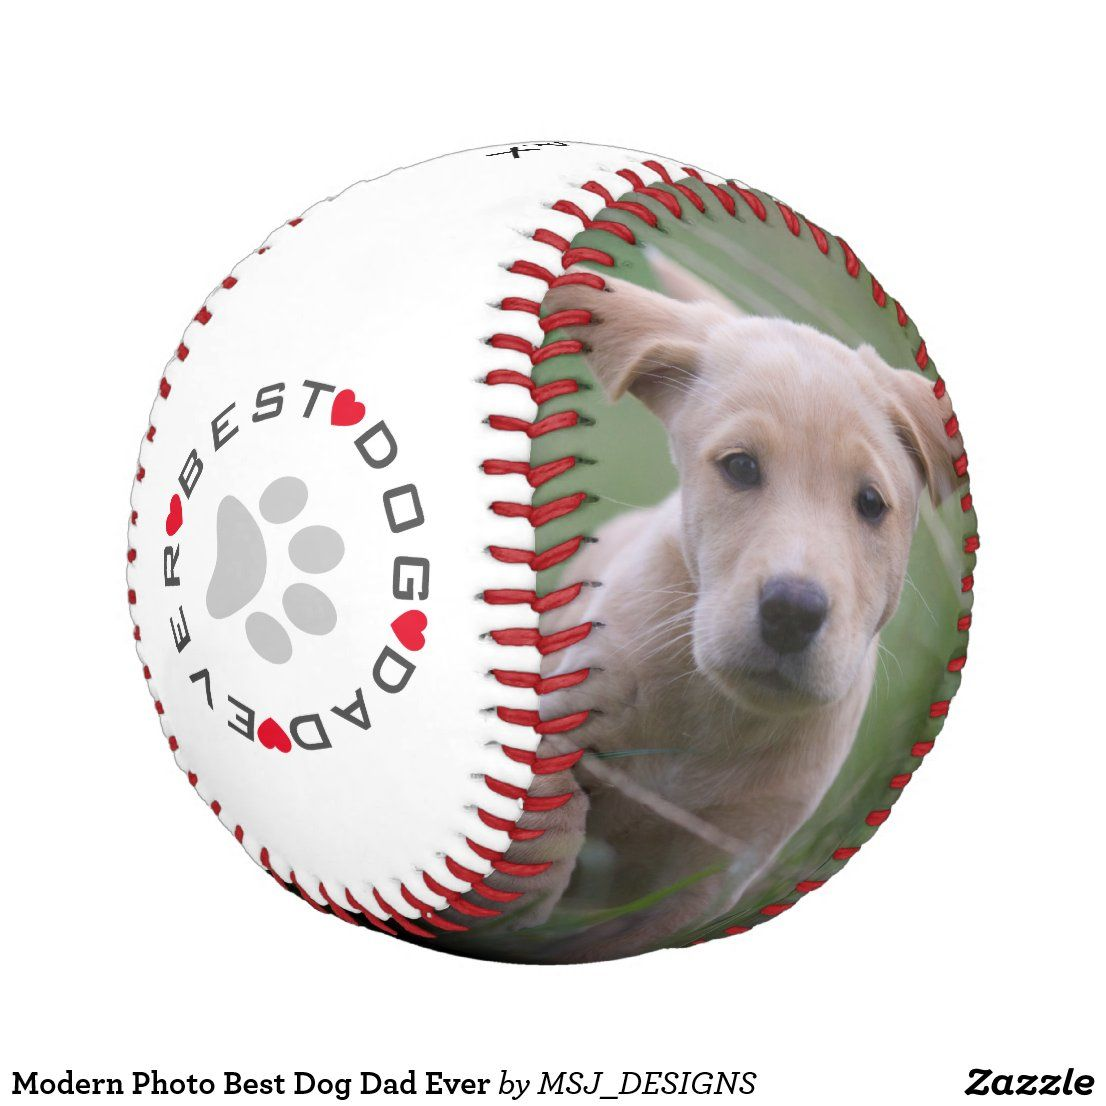 Modern Photo Best Dog Dad Ever Baseball Zazzle Com In 2020 Dog Dad Team Pictures Baseball